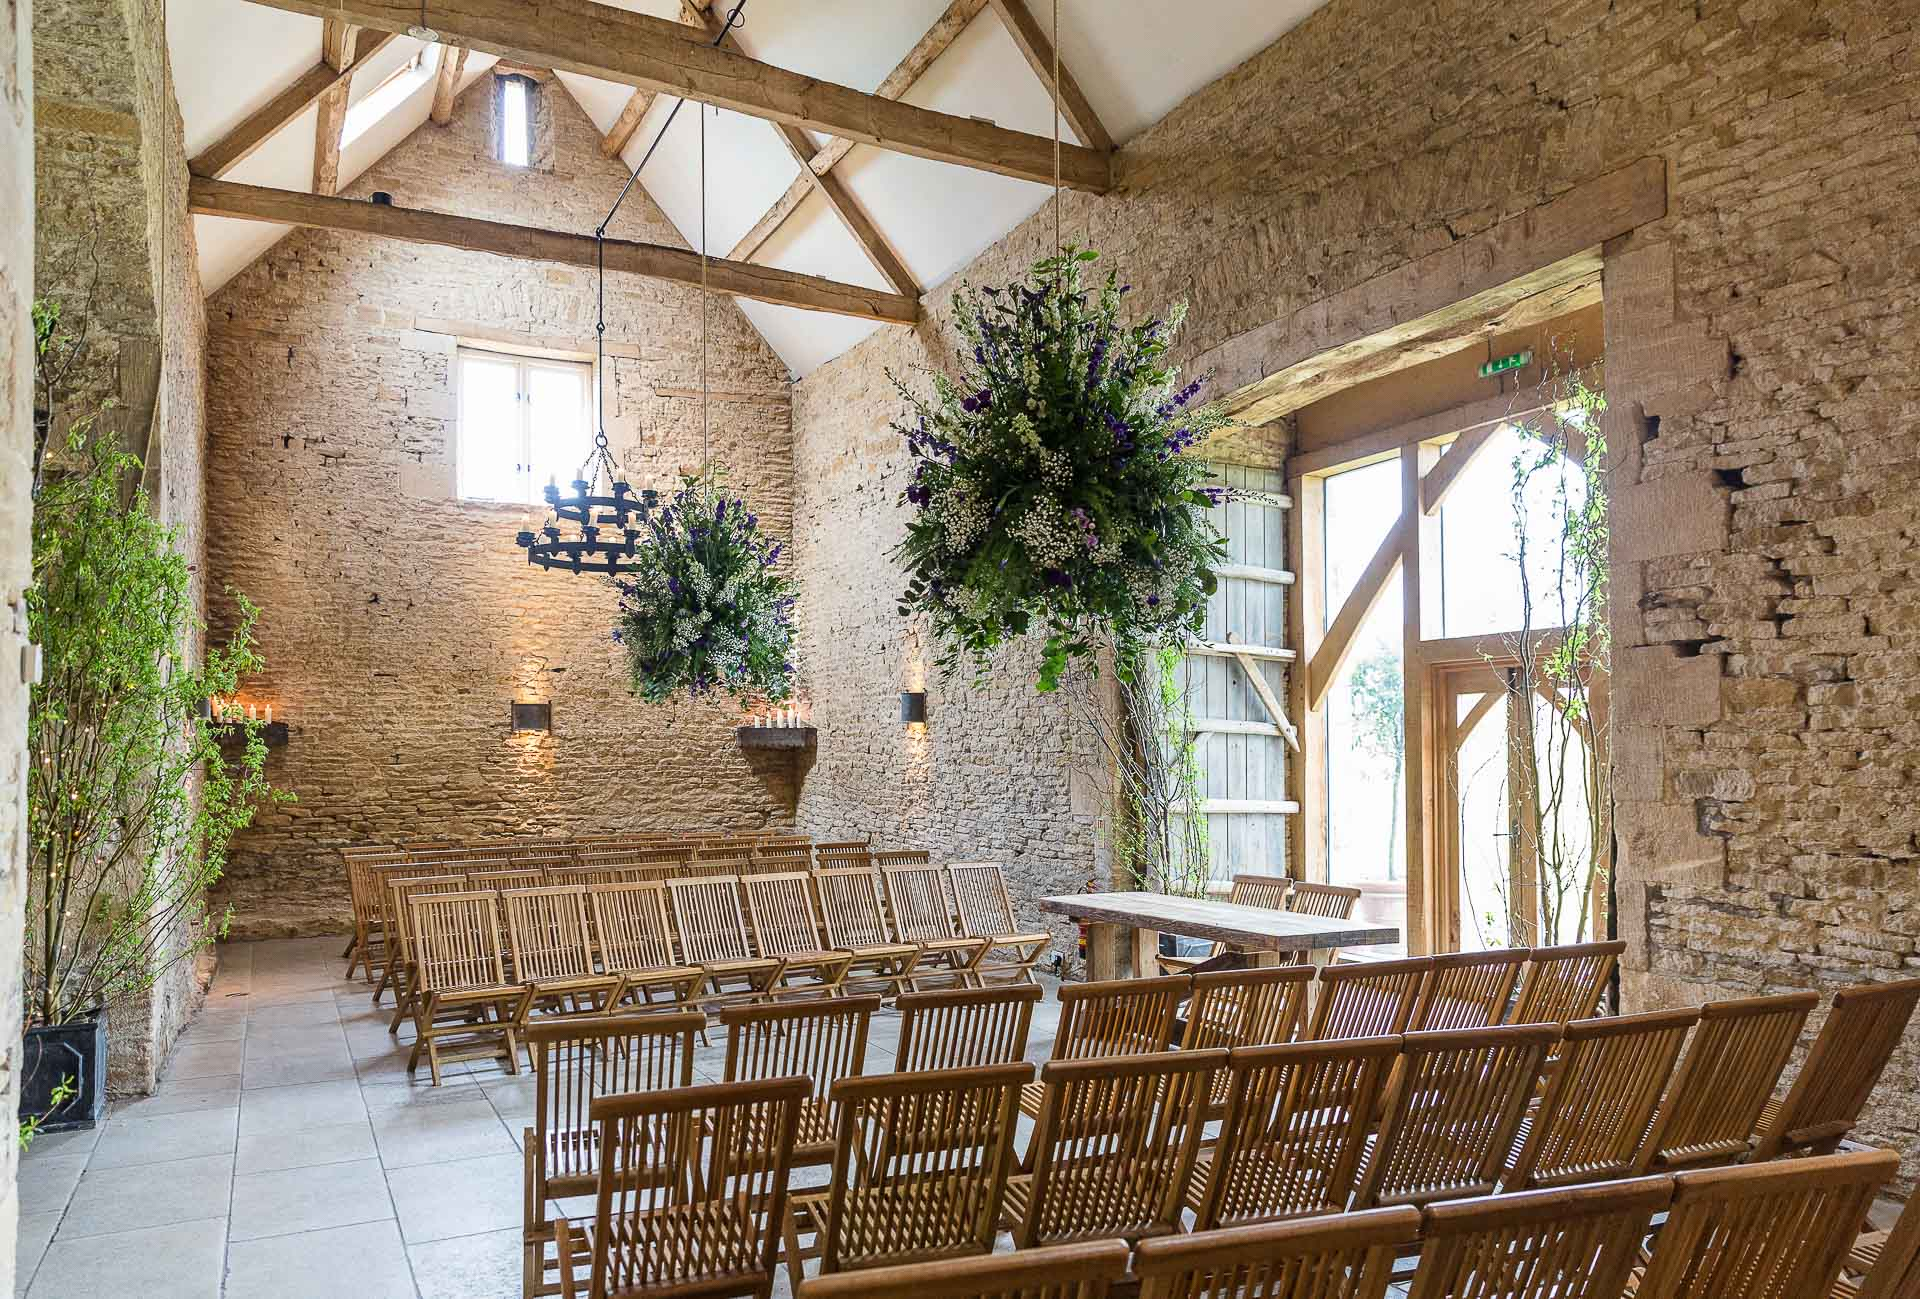 Nick Amp Kelly Cripps Stone Barn Wedding Louise Bowles